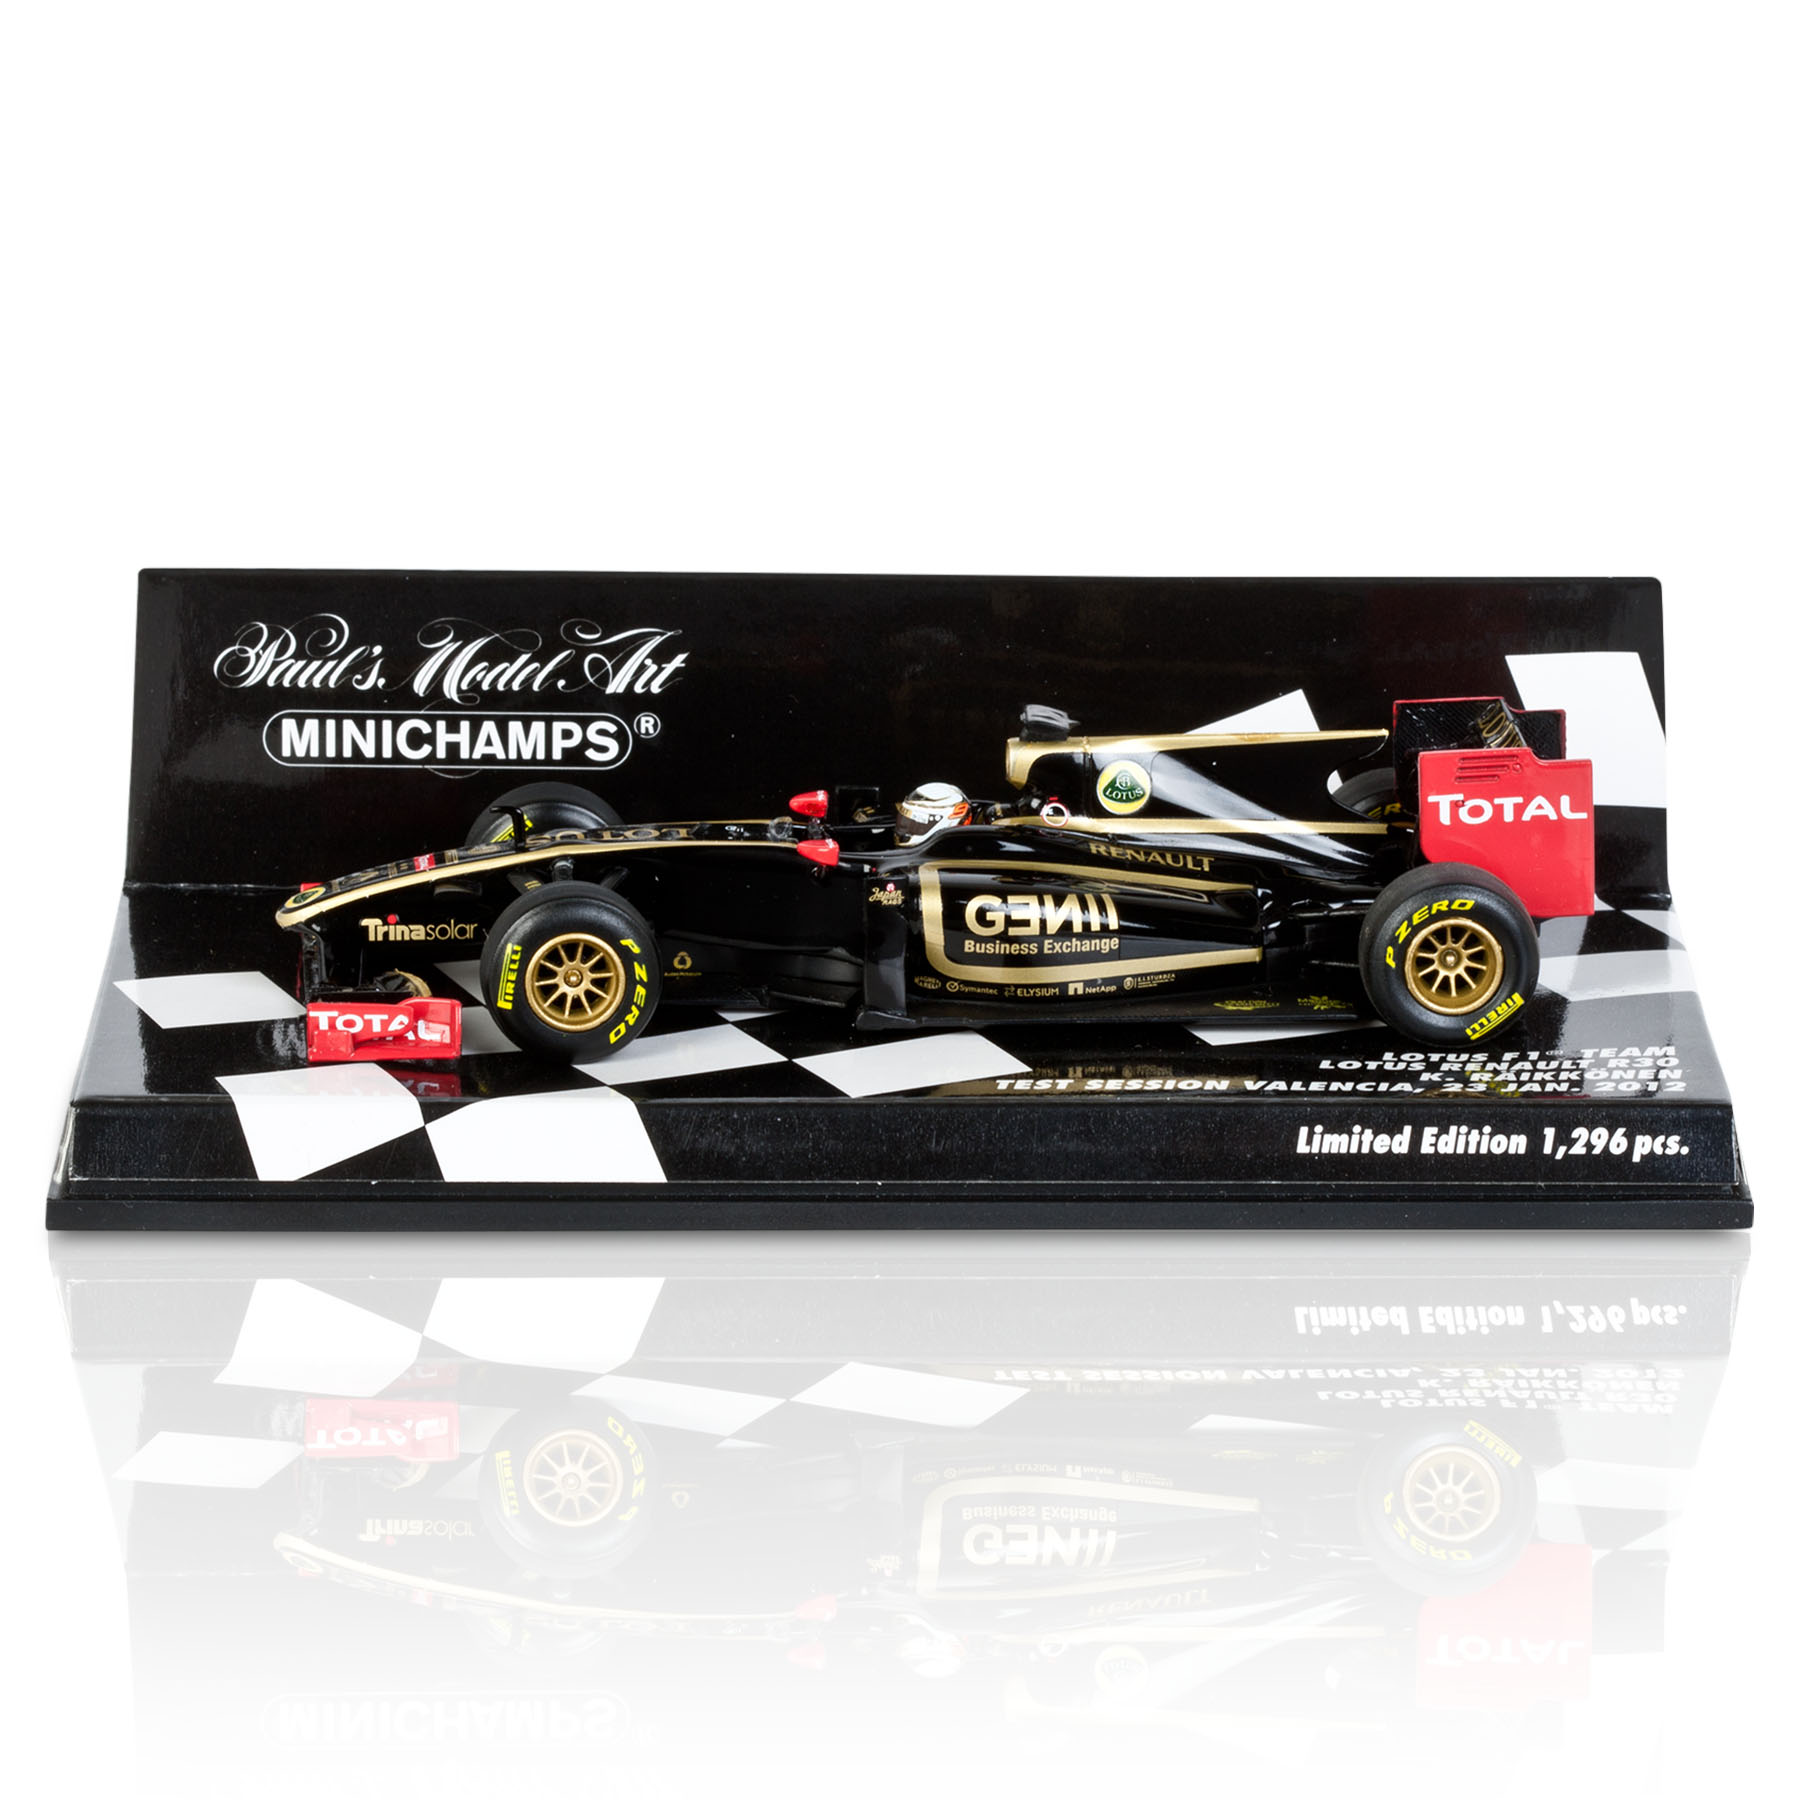 Lotus F1 Team Renault R20 2011 Kimi Raikkonen Test Session 23rd January 2012 - Limited Edition 1:43 Scale